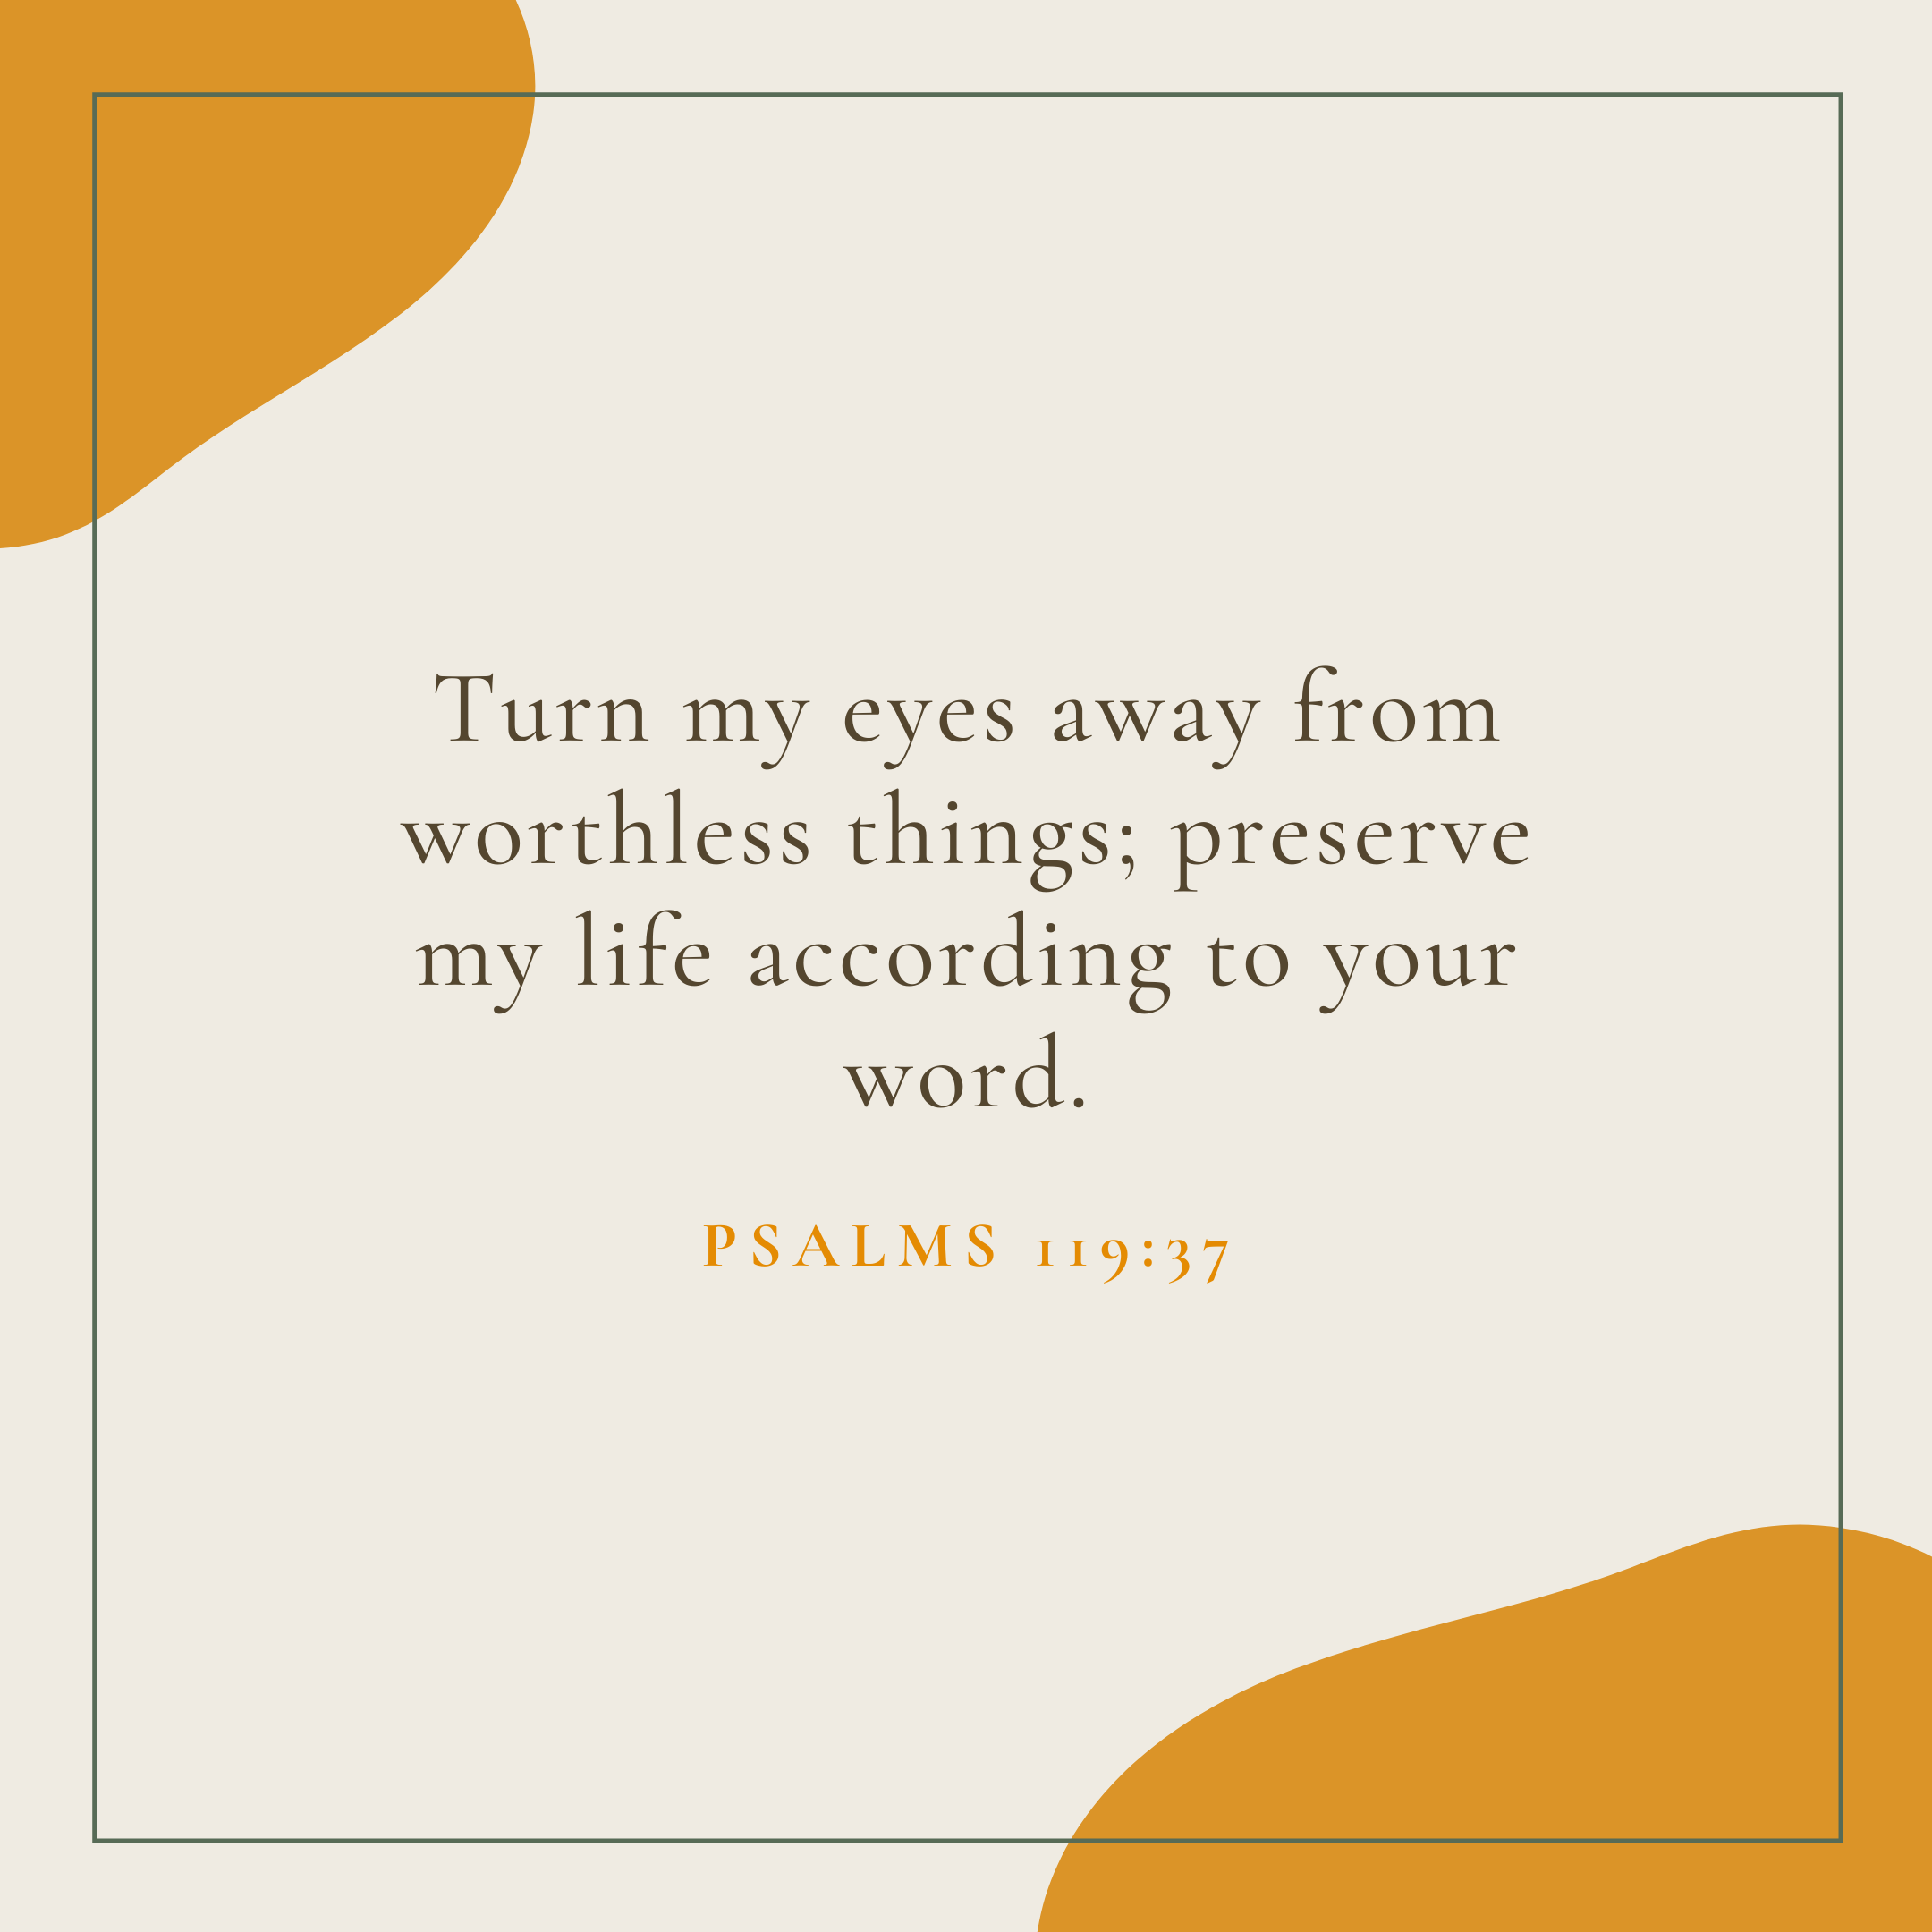 Turn my eyes away from worthless things; preserve my life according to your word.